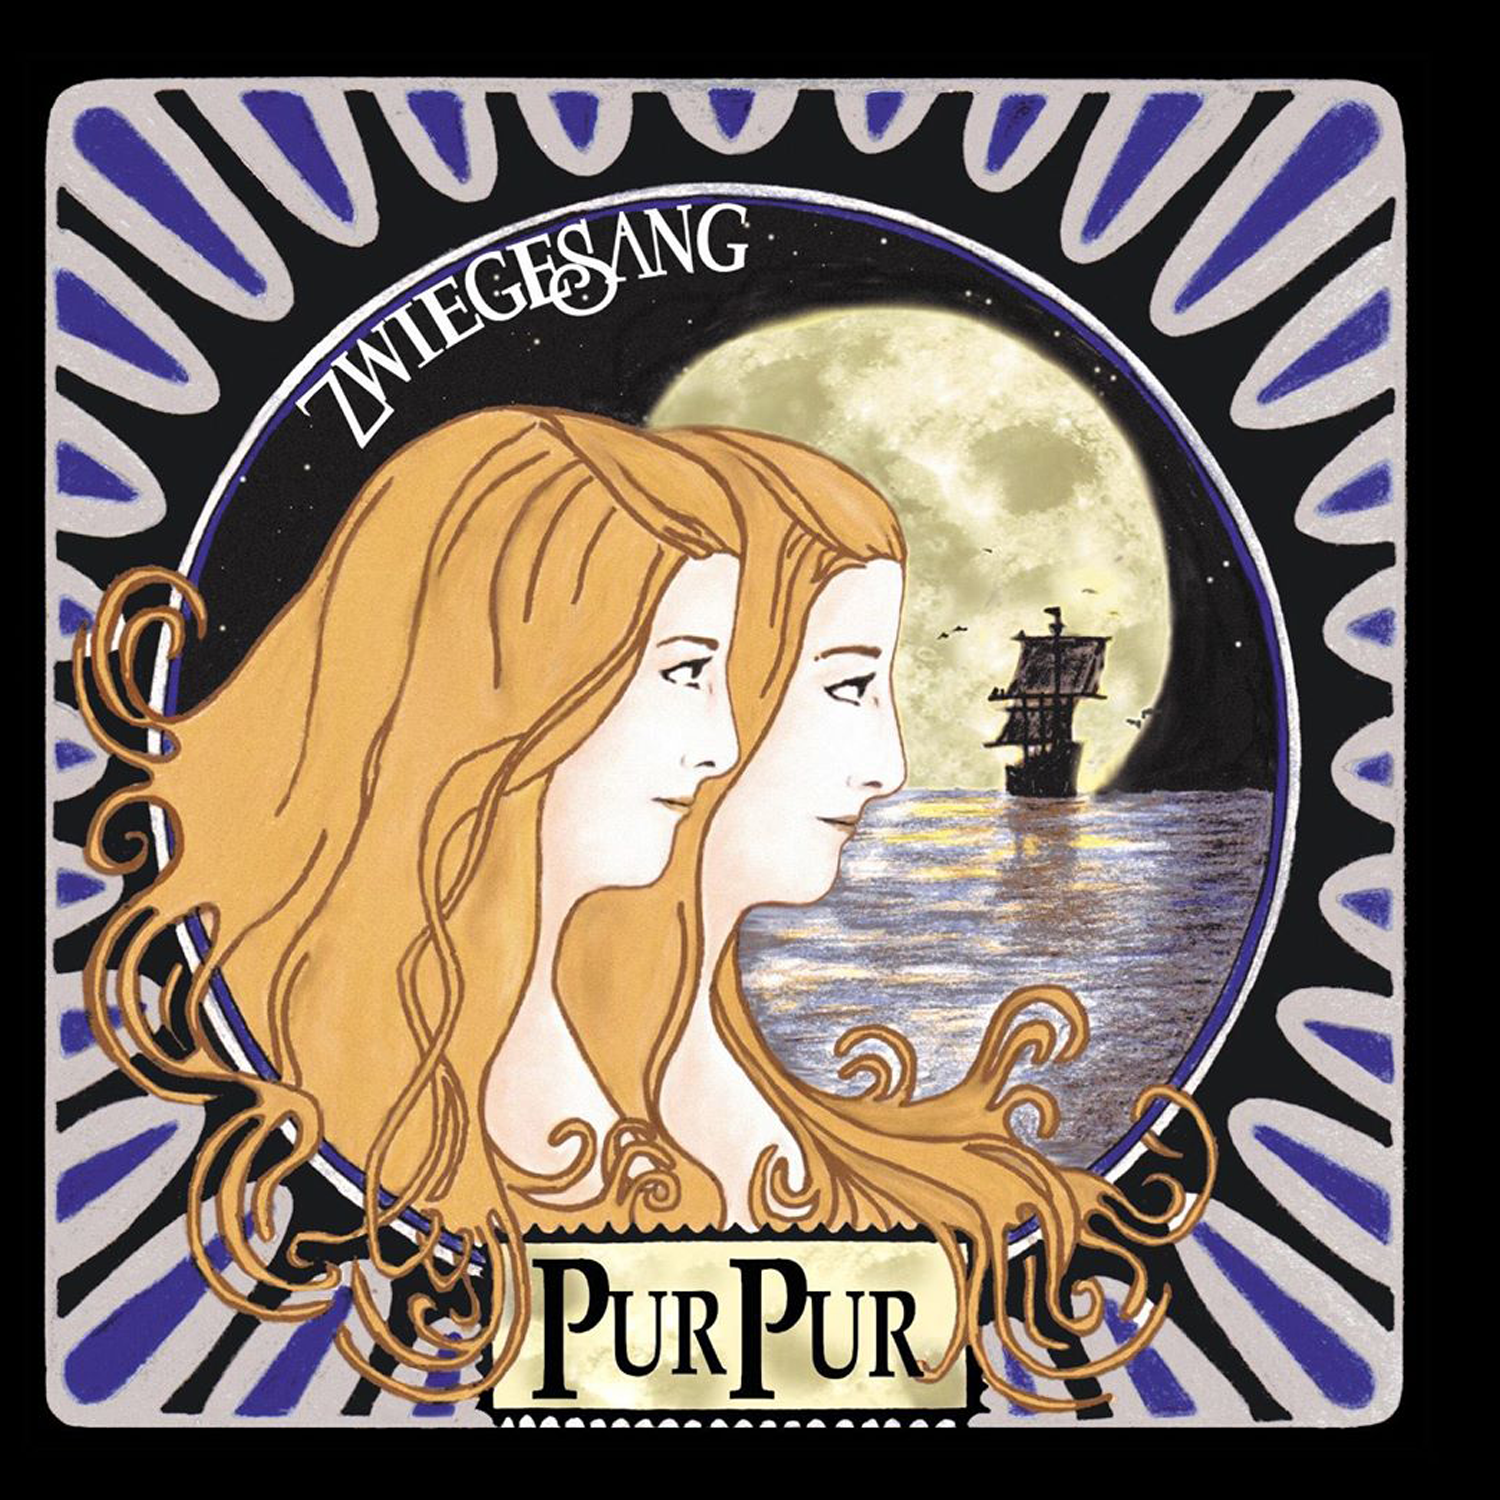 PurPur - Zwiesang (Download)